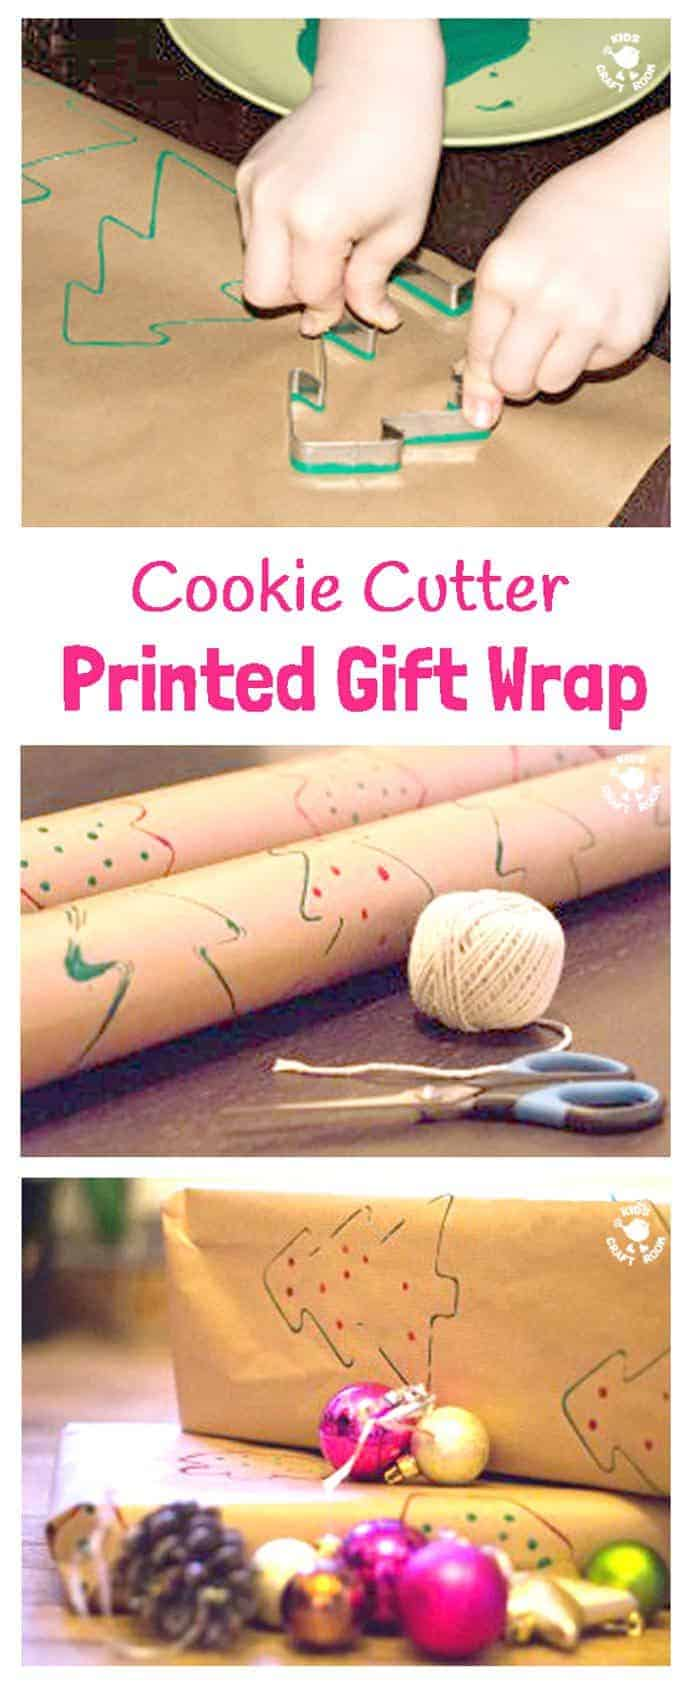 Cookie Cutter Printed Gift Wrap Kids Craft Room